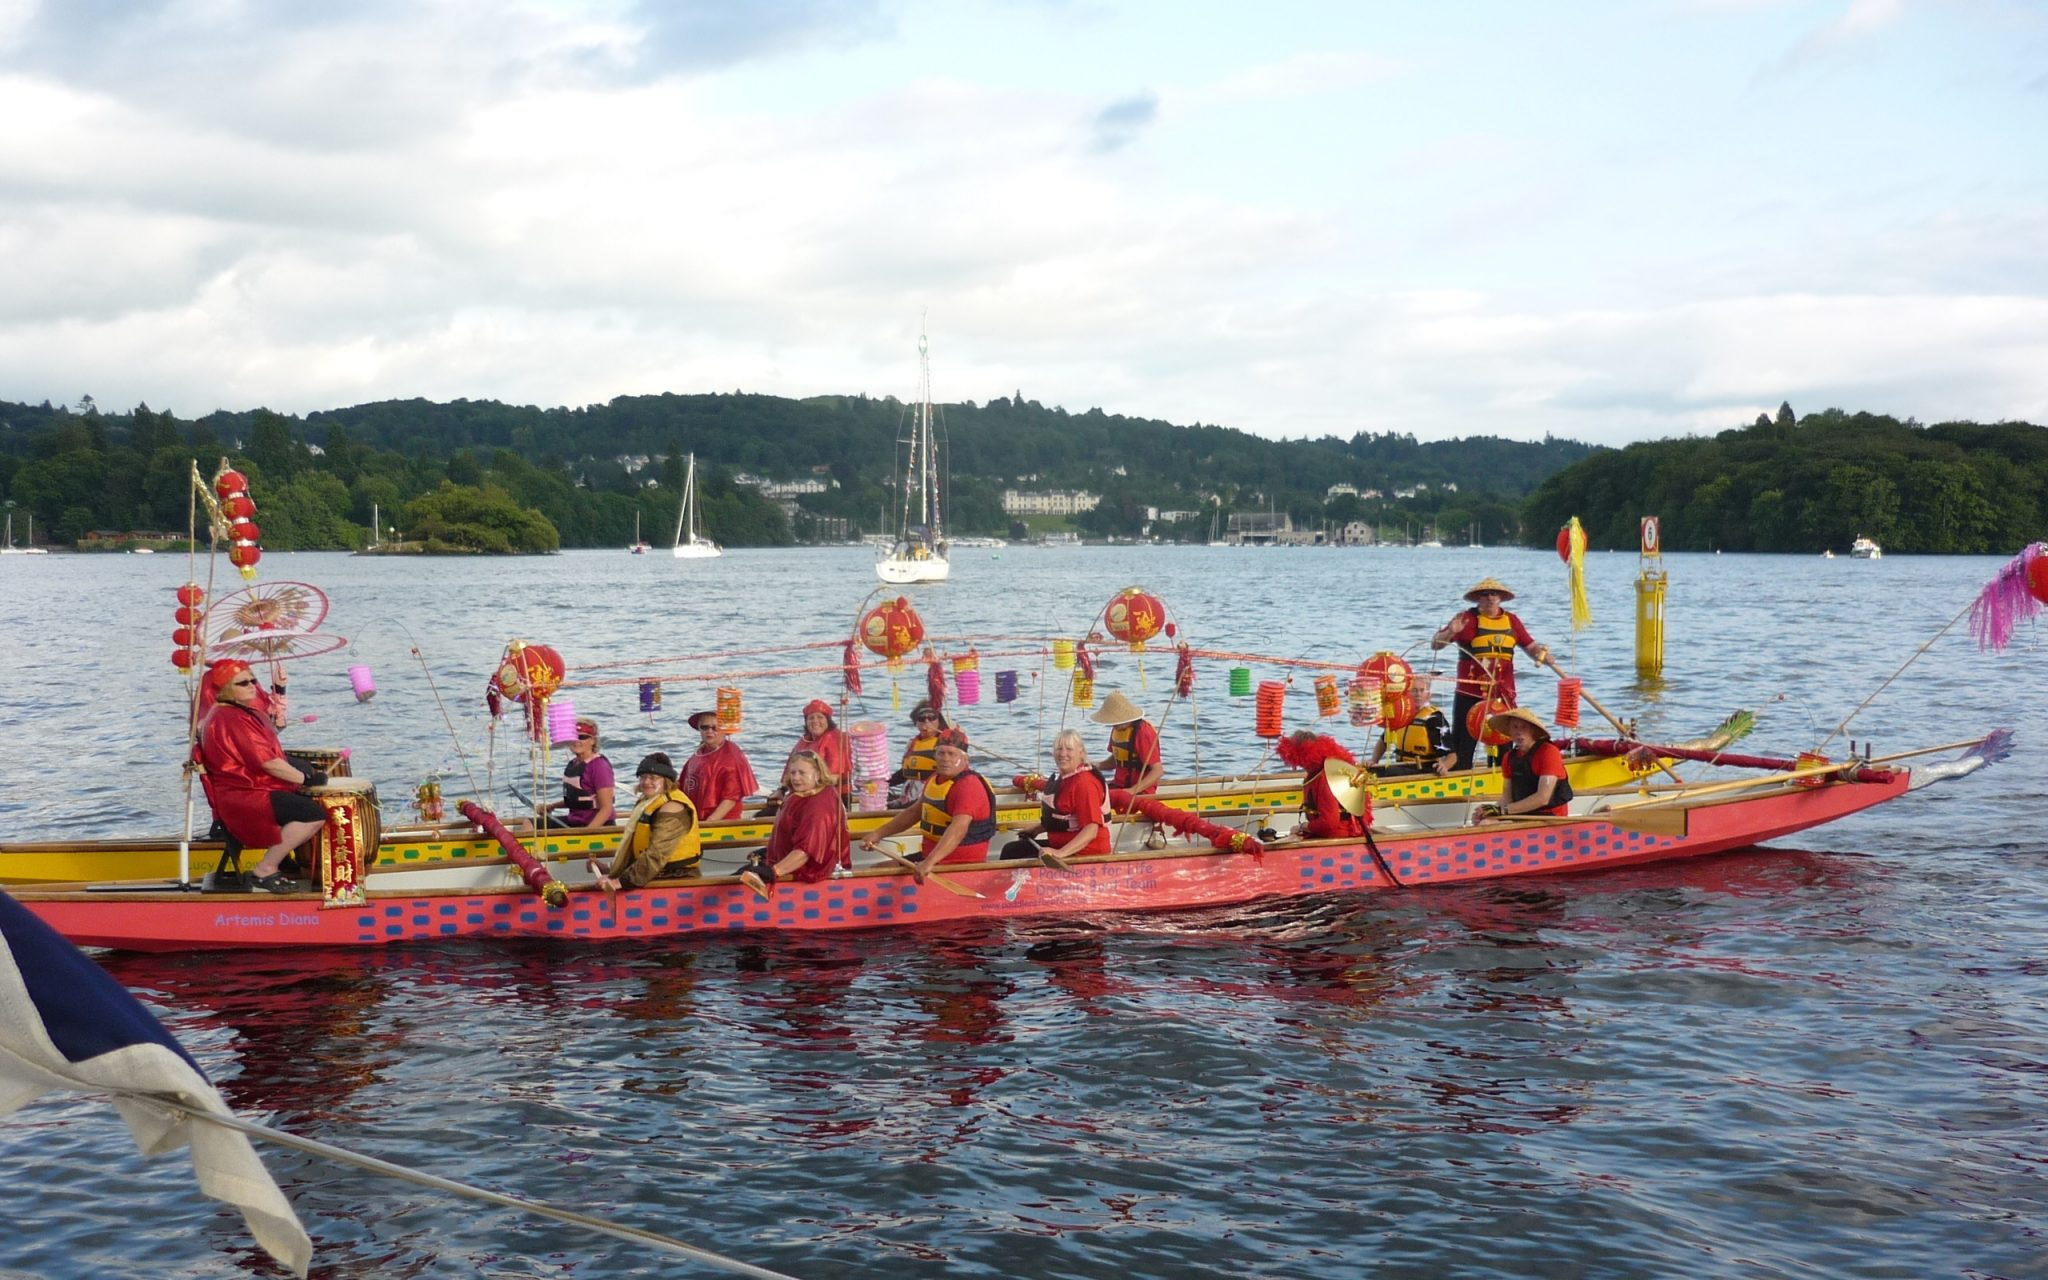 2010 and our first time with the best dressed boat competition organised by the Lake District Boat Club. We chose an oriental theme because we were paddling our dragon boat.